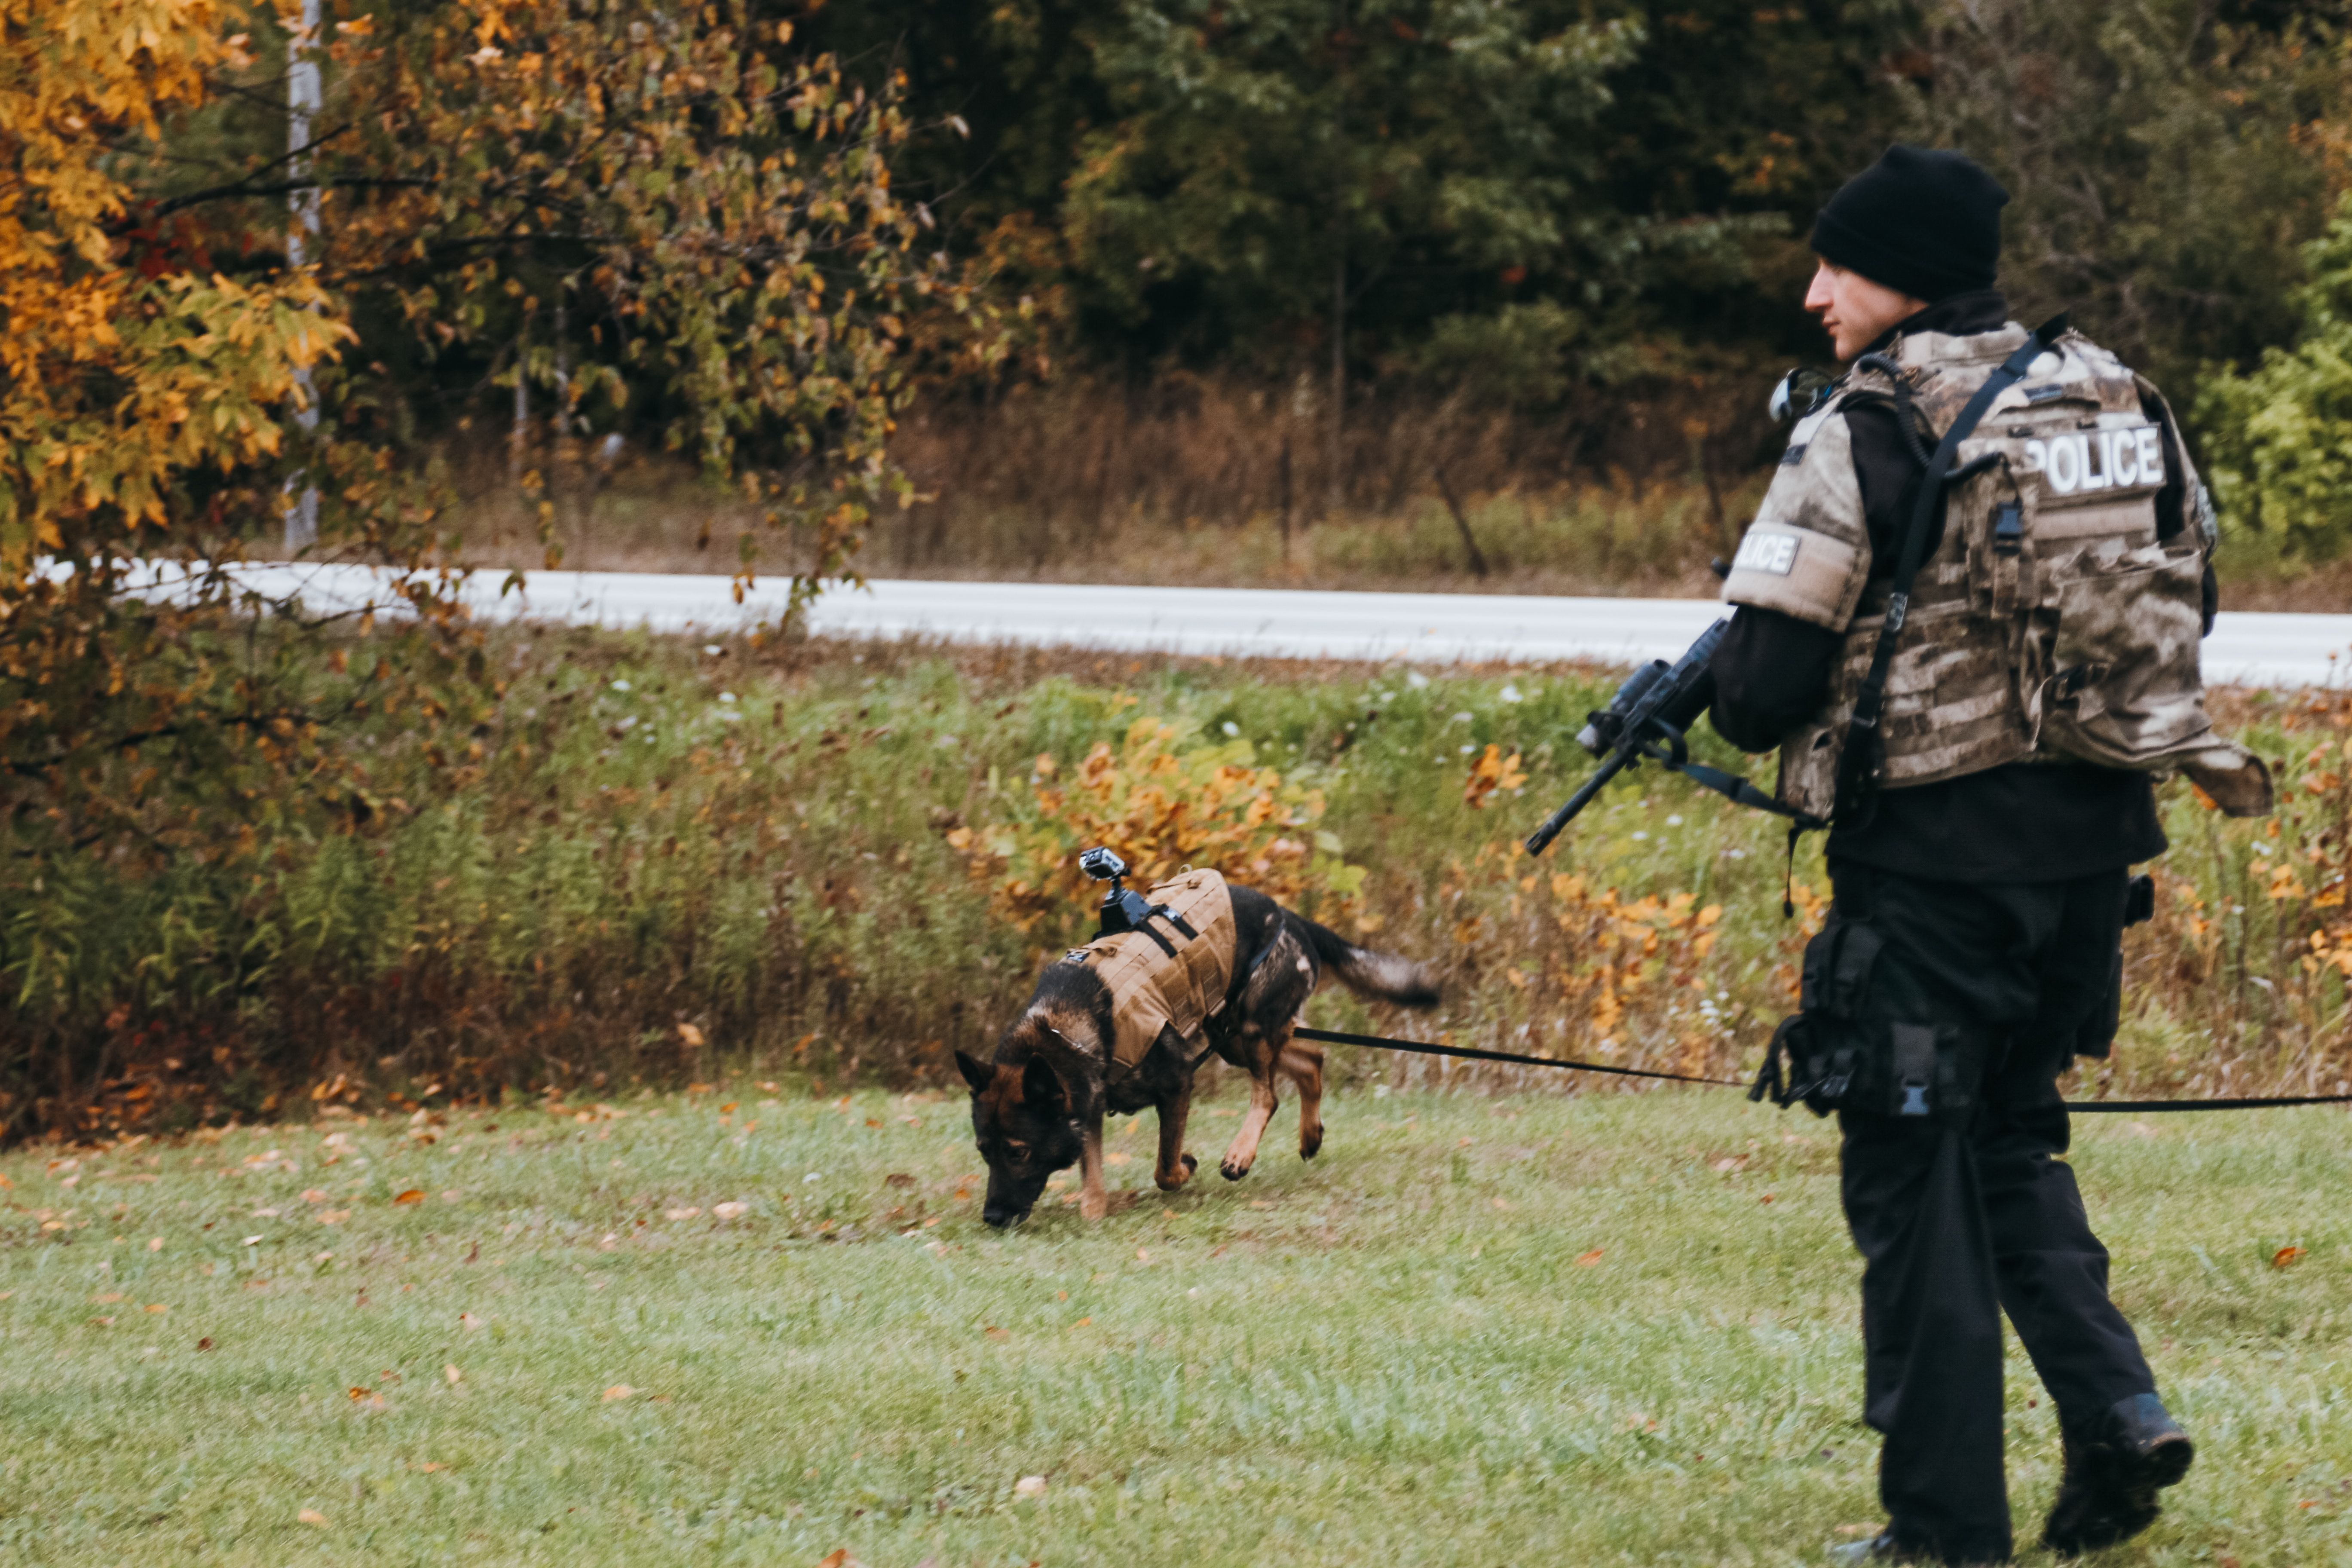 Training Police K9 Tracking Dogs Seminar With Kevin Sheldahl I